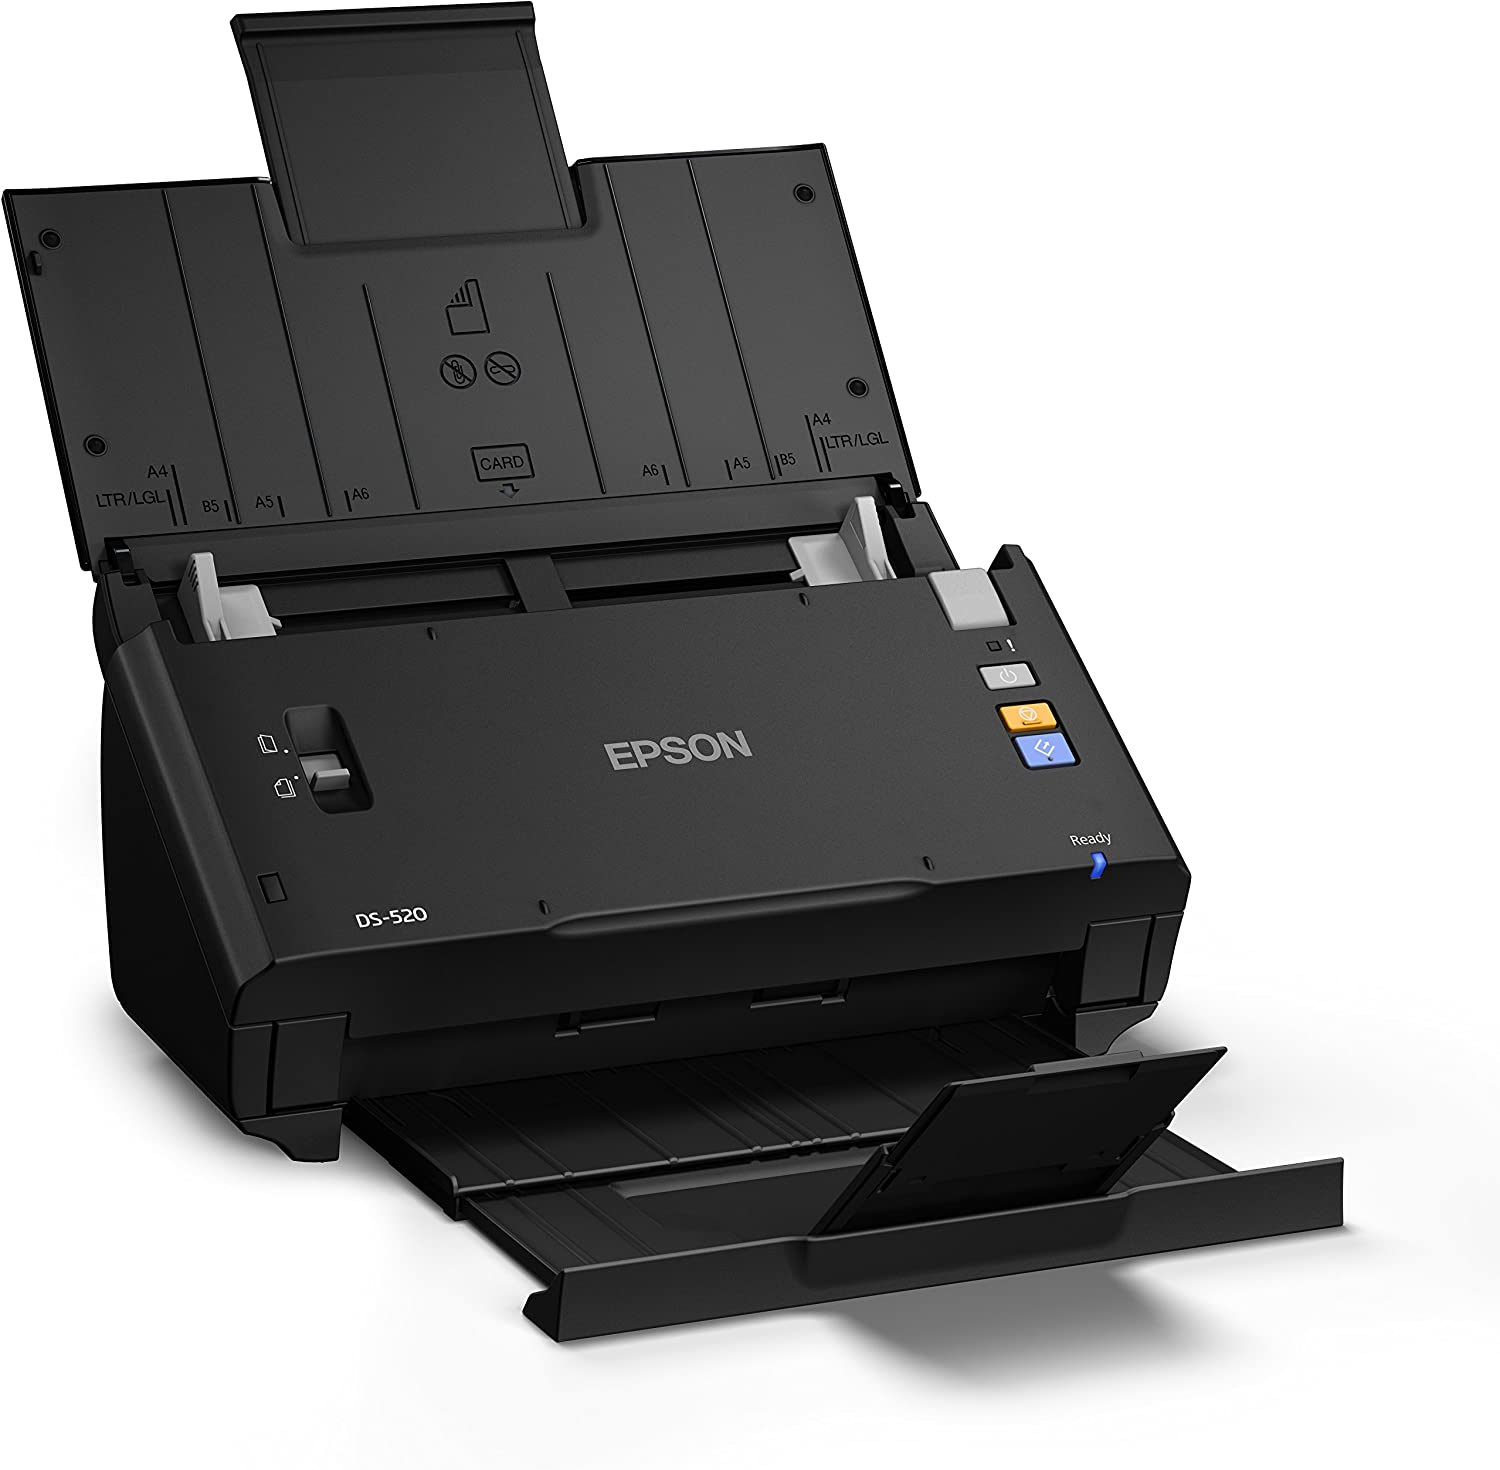 Amazon.com: Epson WorkForce DS-520: Electronics